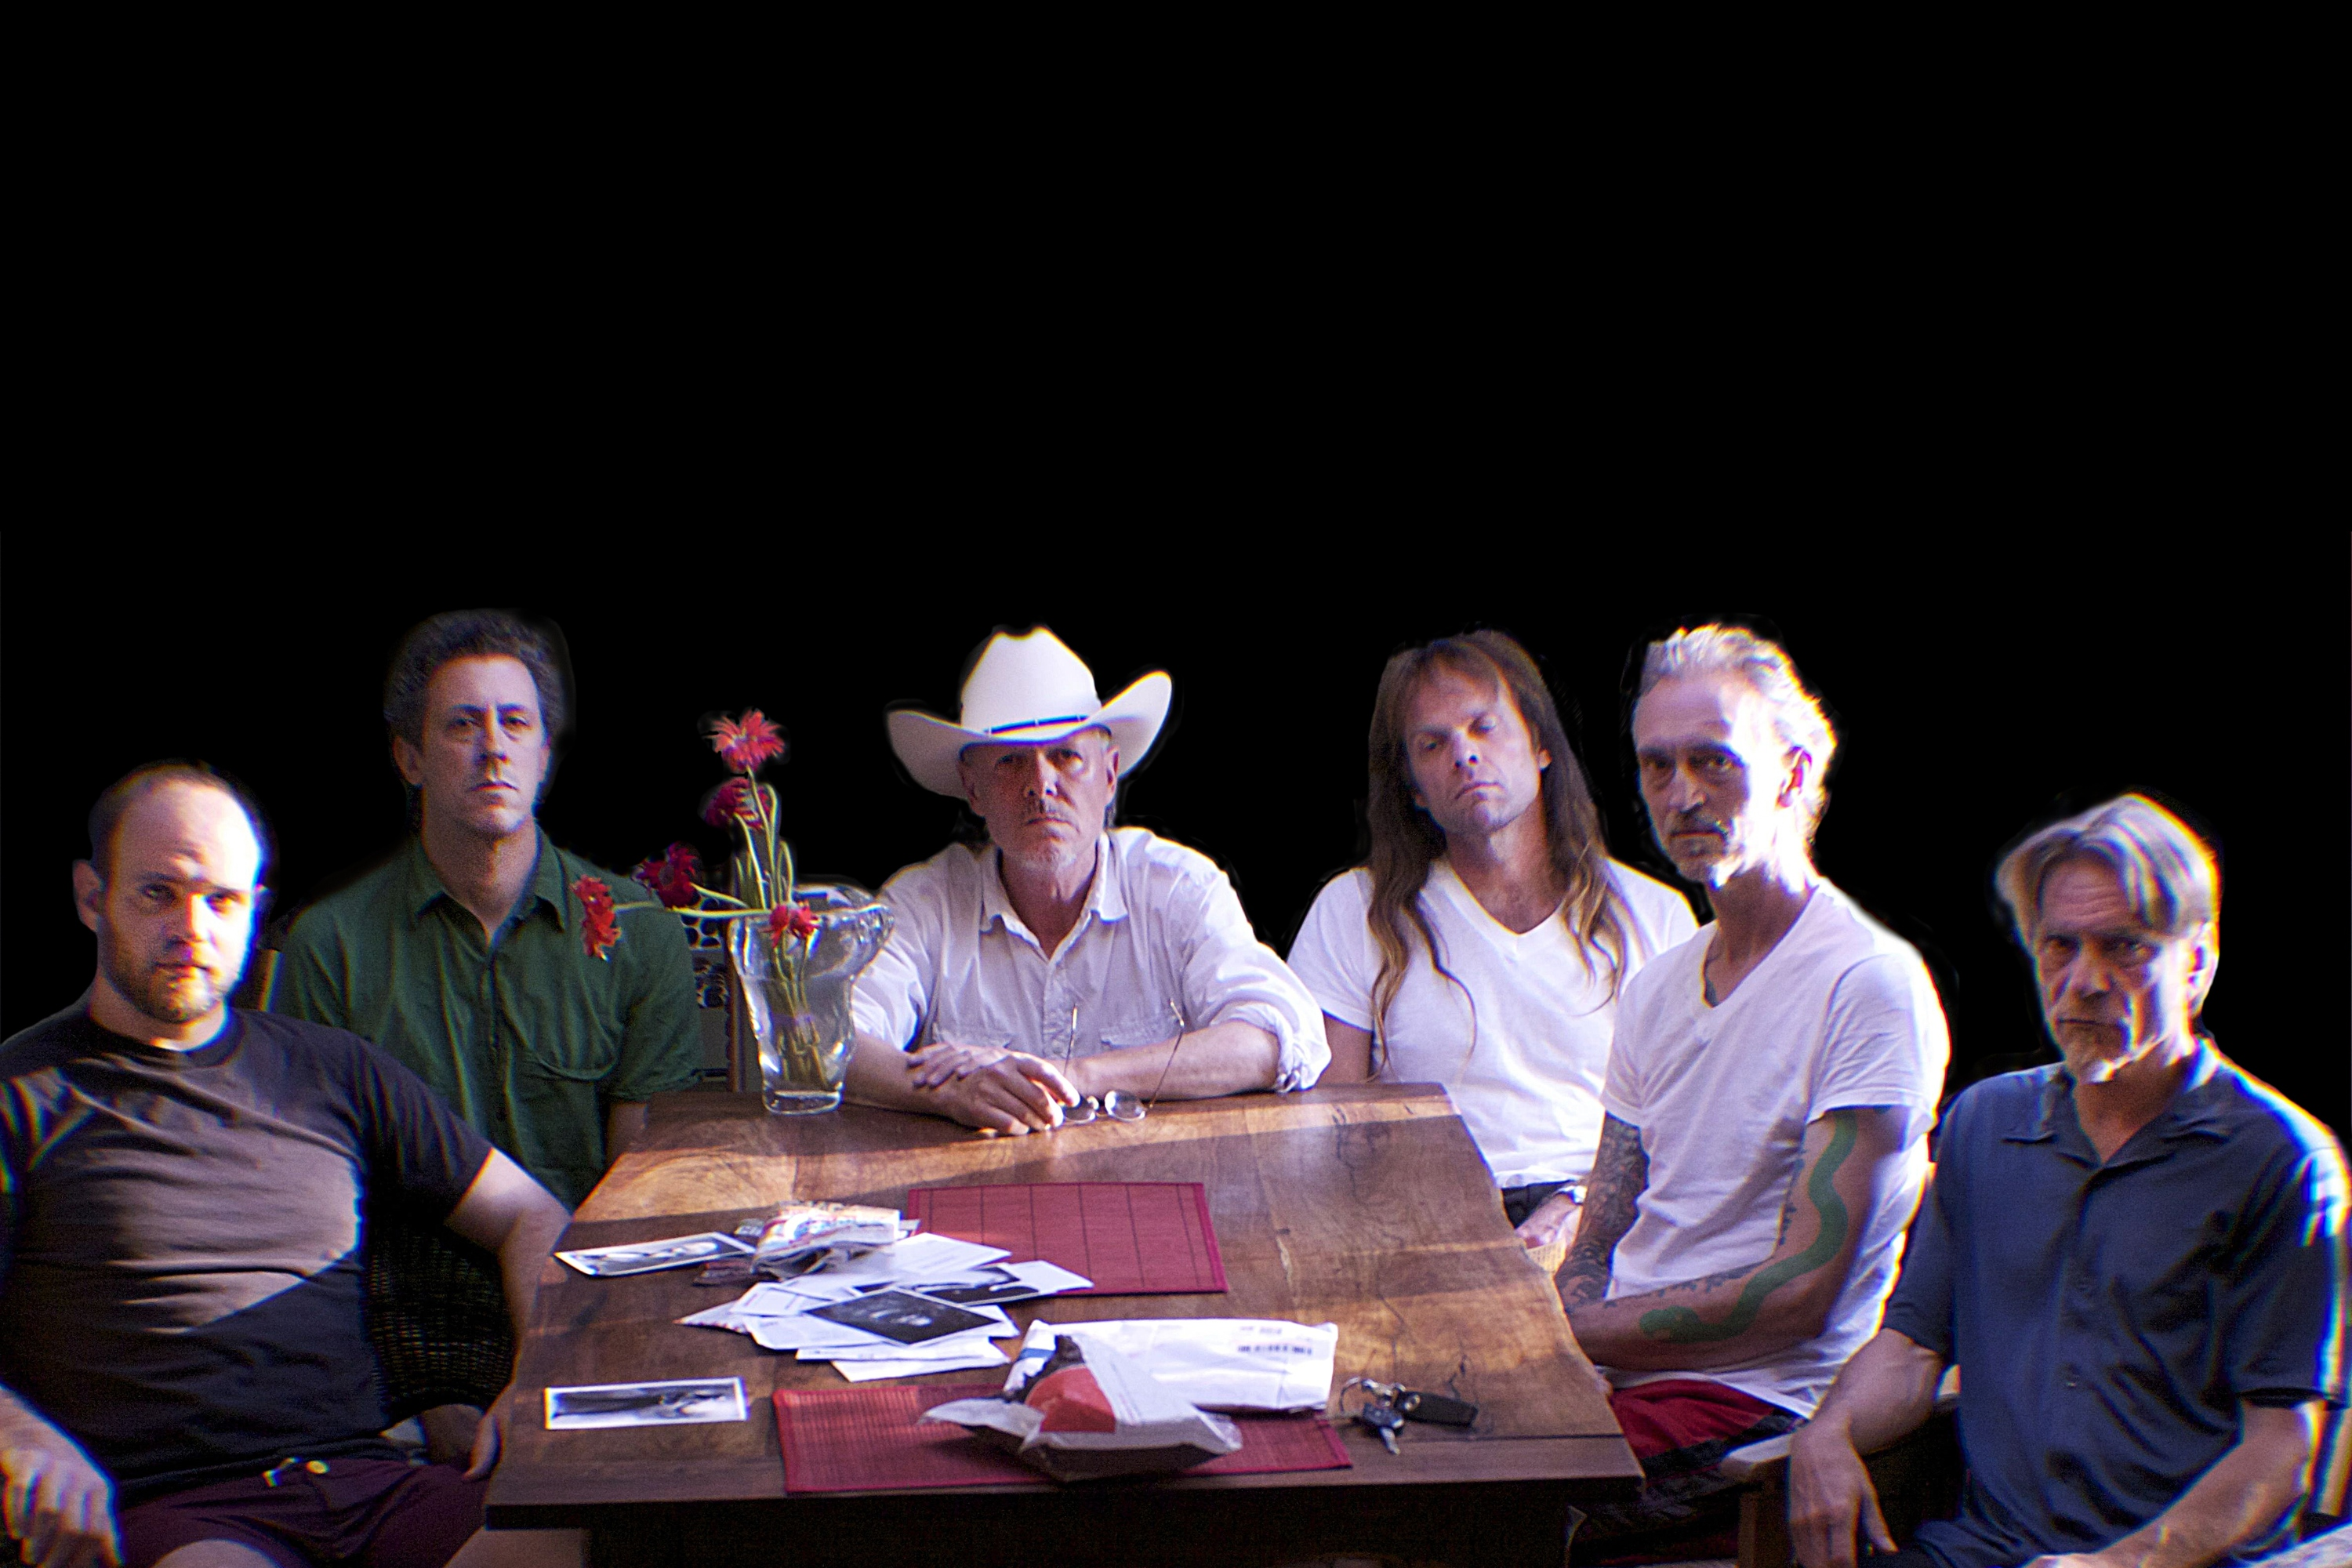 To Be Kind, de Swans